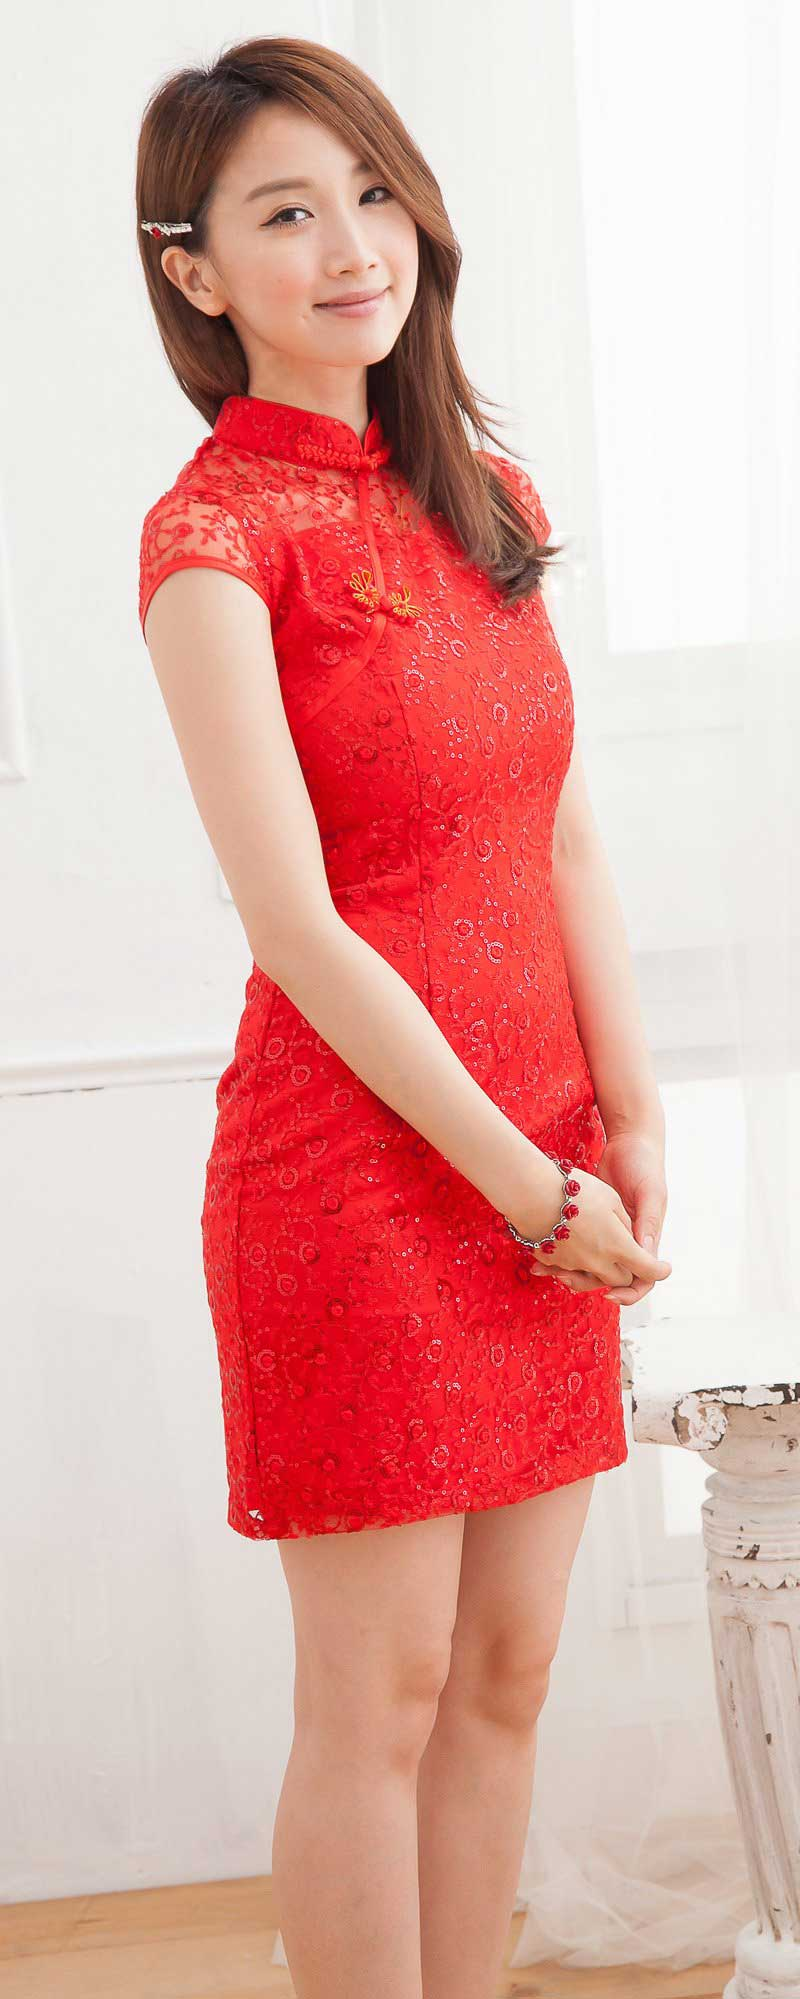 JUAL DRESS CHEONGSAM IMLEK SIMPLE TERBARU 2014